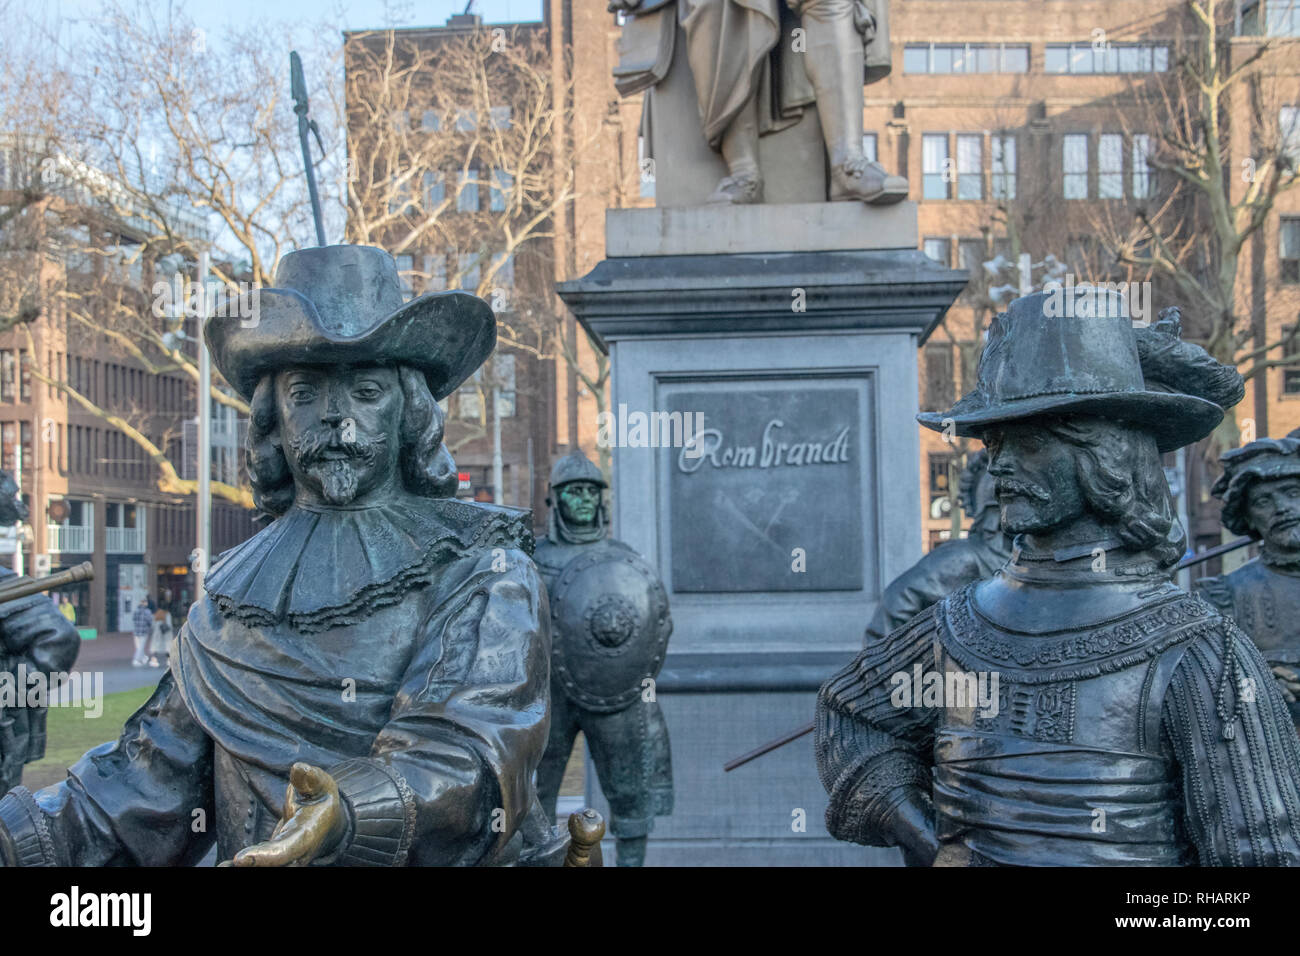 Details Of The Rembrandt Monument At The Rembrandtplein At Amsterdam The Netherlands 2019 - Stock Image